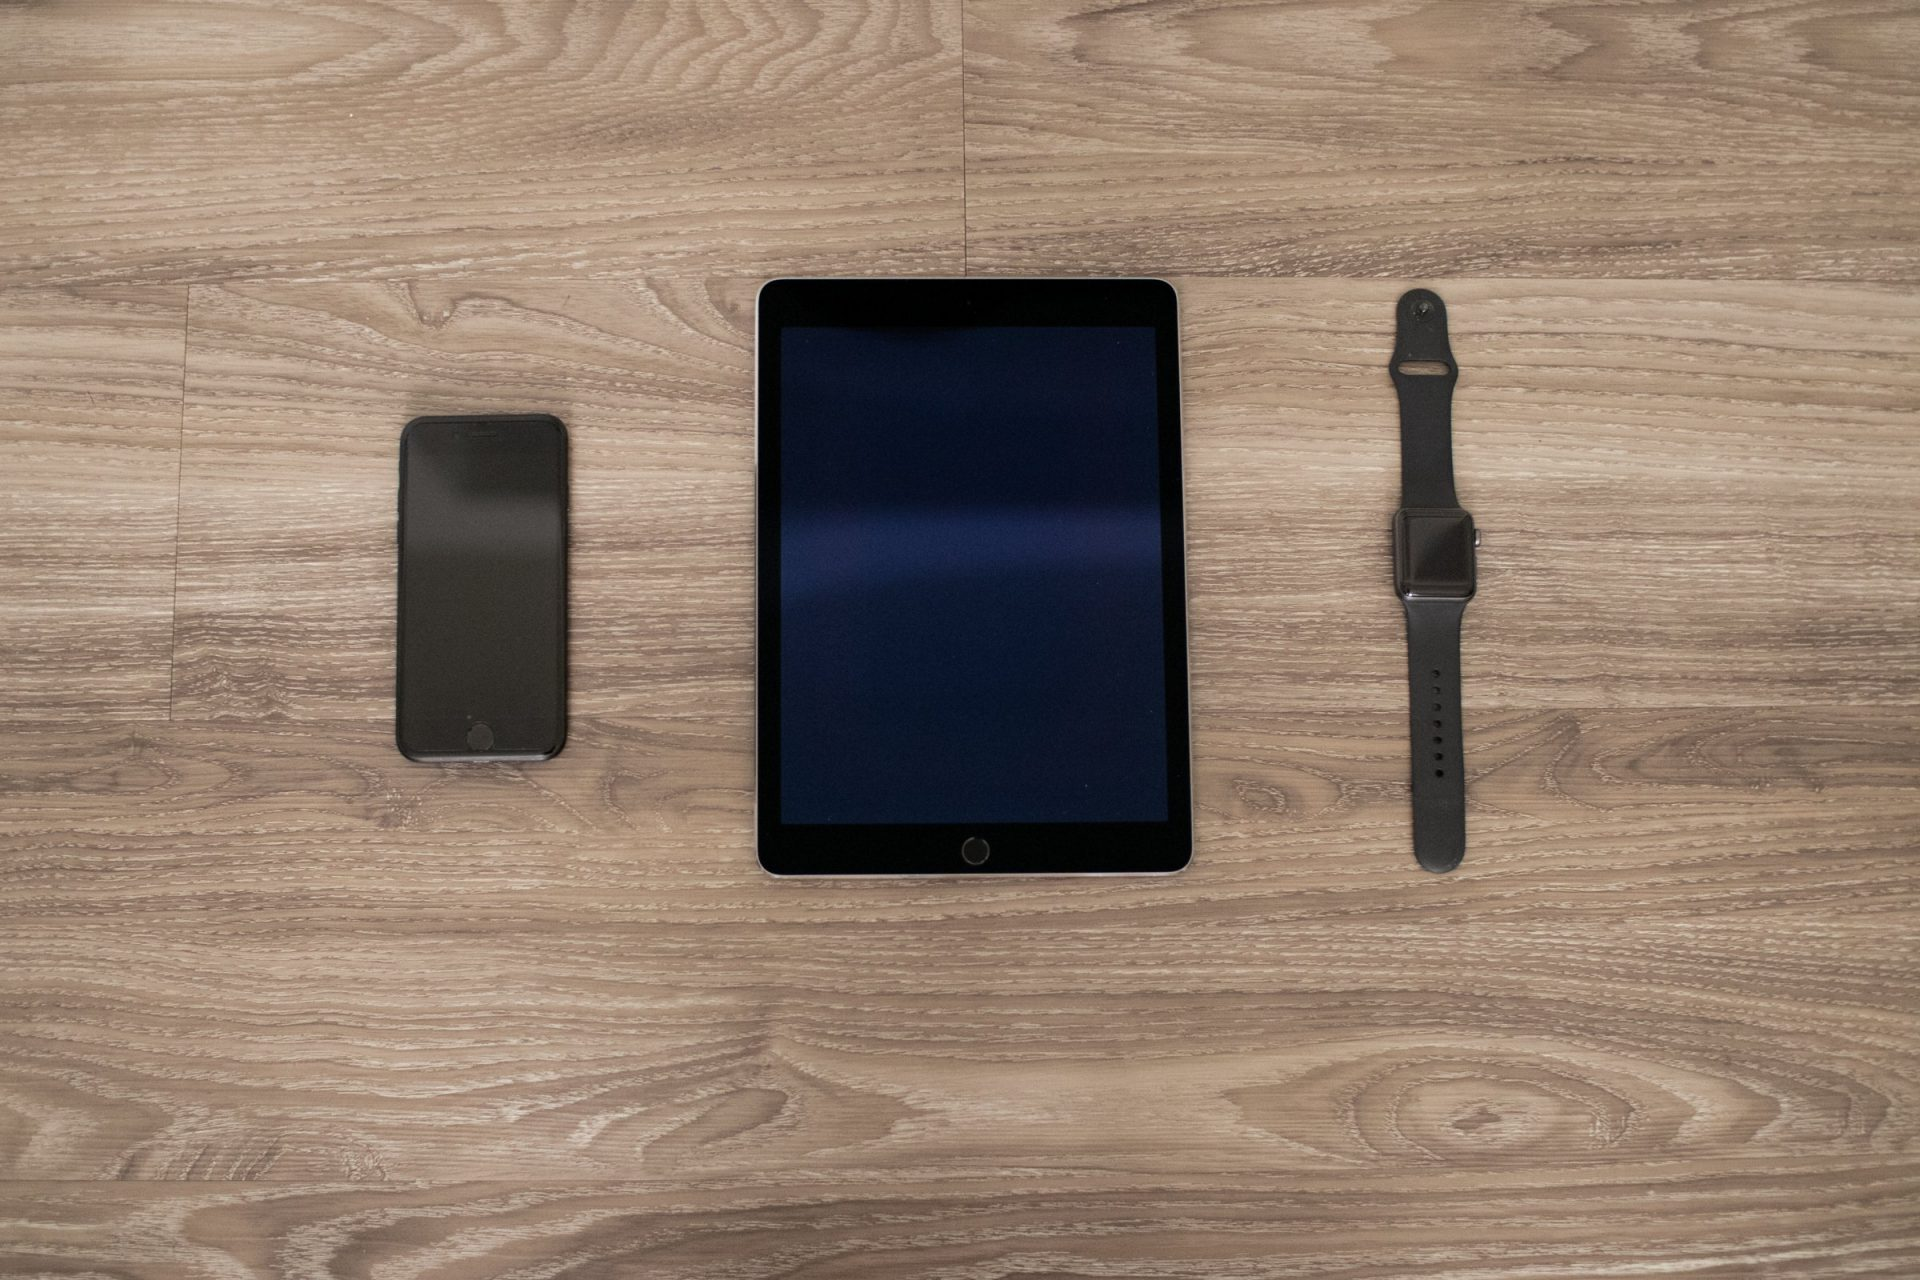 Apple Devices On Wooden Surface